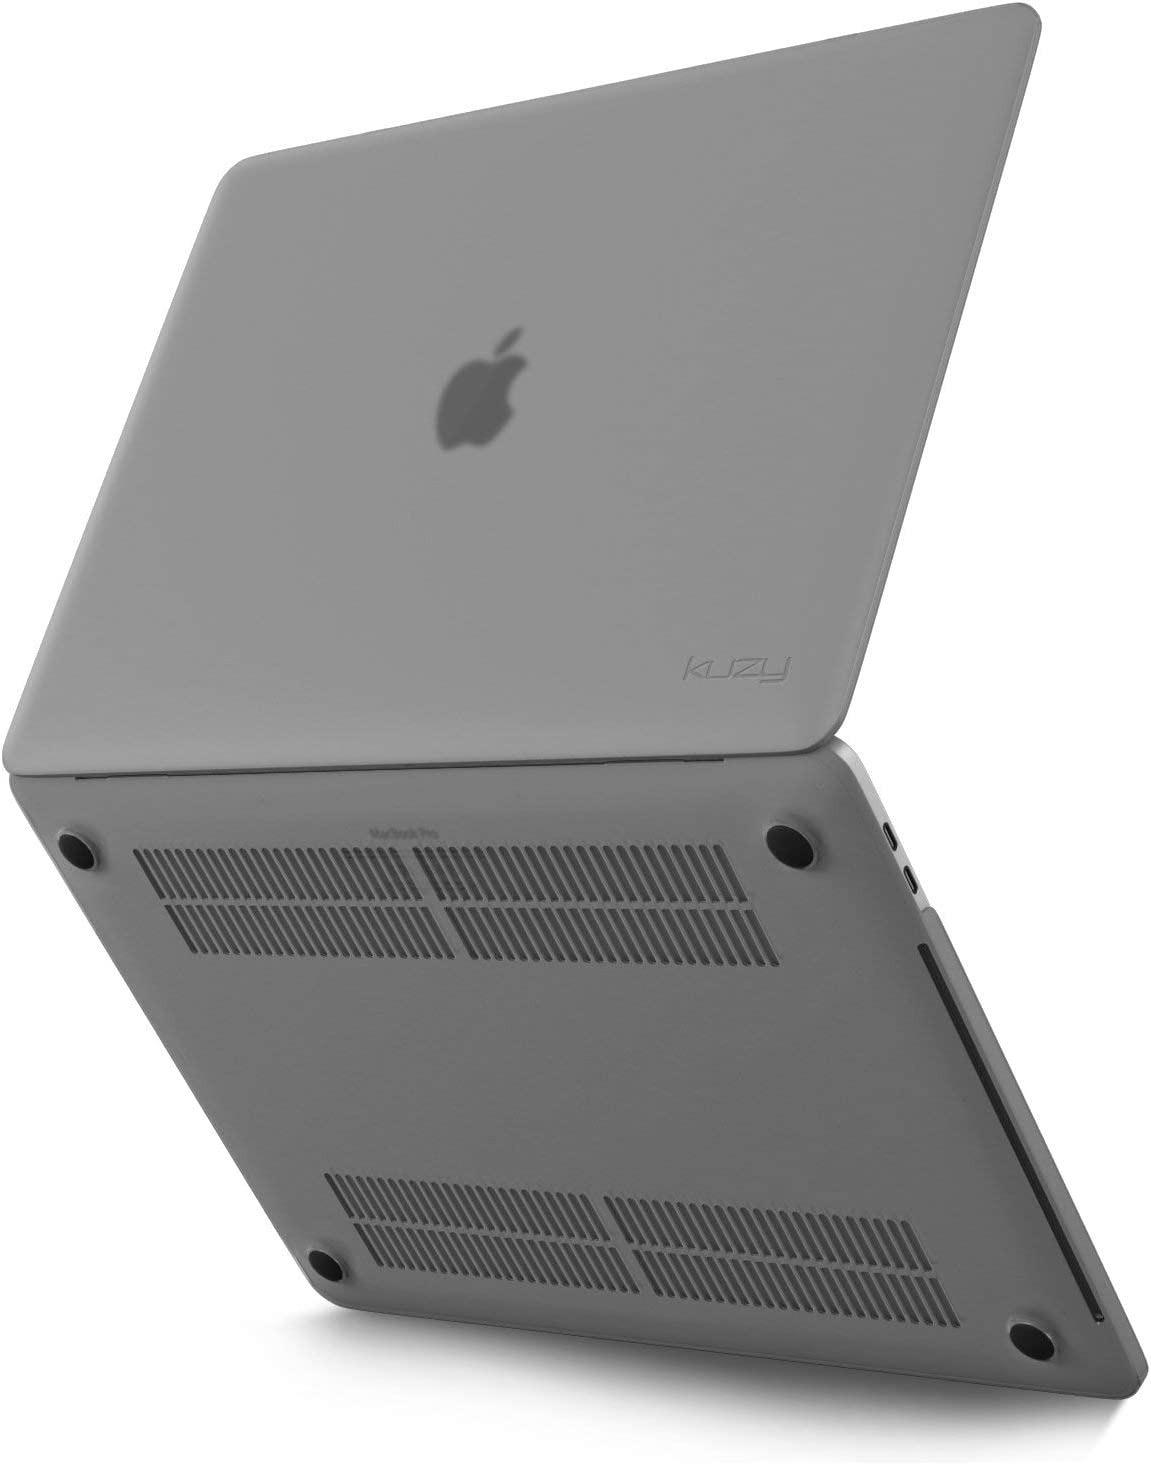 Kuzy MacBook Pro 13 inch Case 2020 2019 2018 2017 2016 Release A2289 A2159 A1989 A1706 A1708, Non-Slip, Fully Vented Heat Disbursement Plastic Hard Shell MacBook Pro Case with Touch Bar Soft, Gray